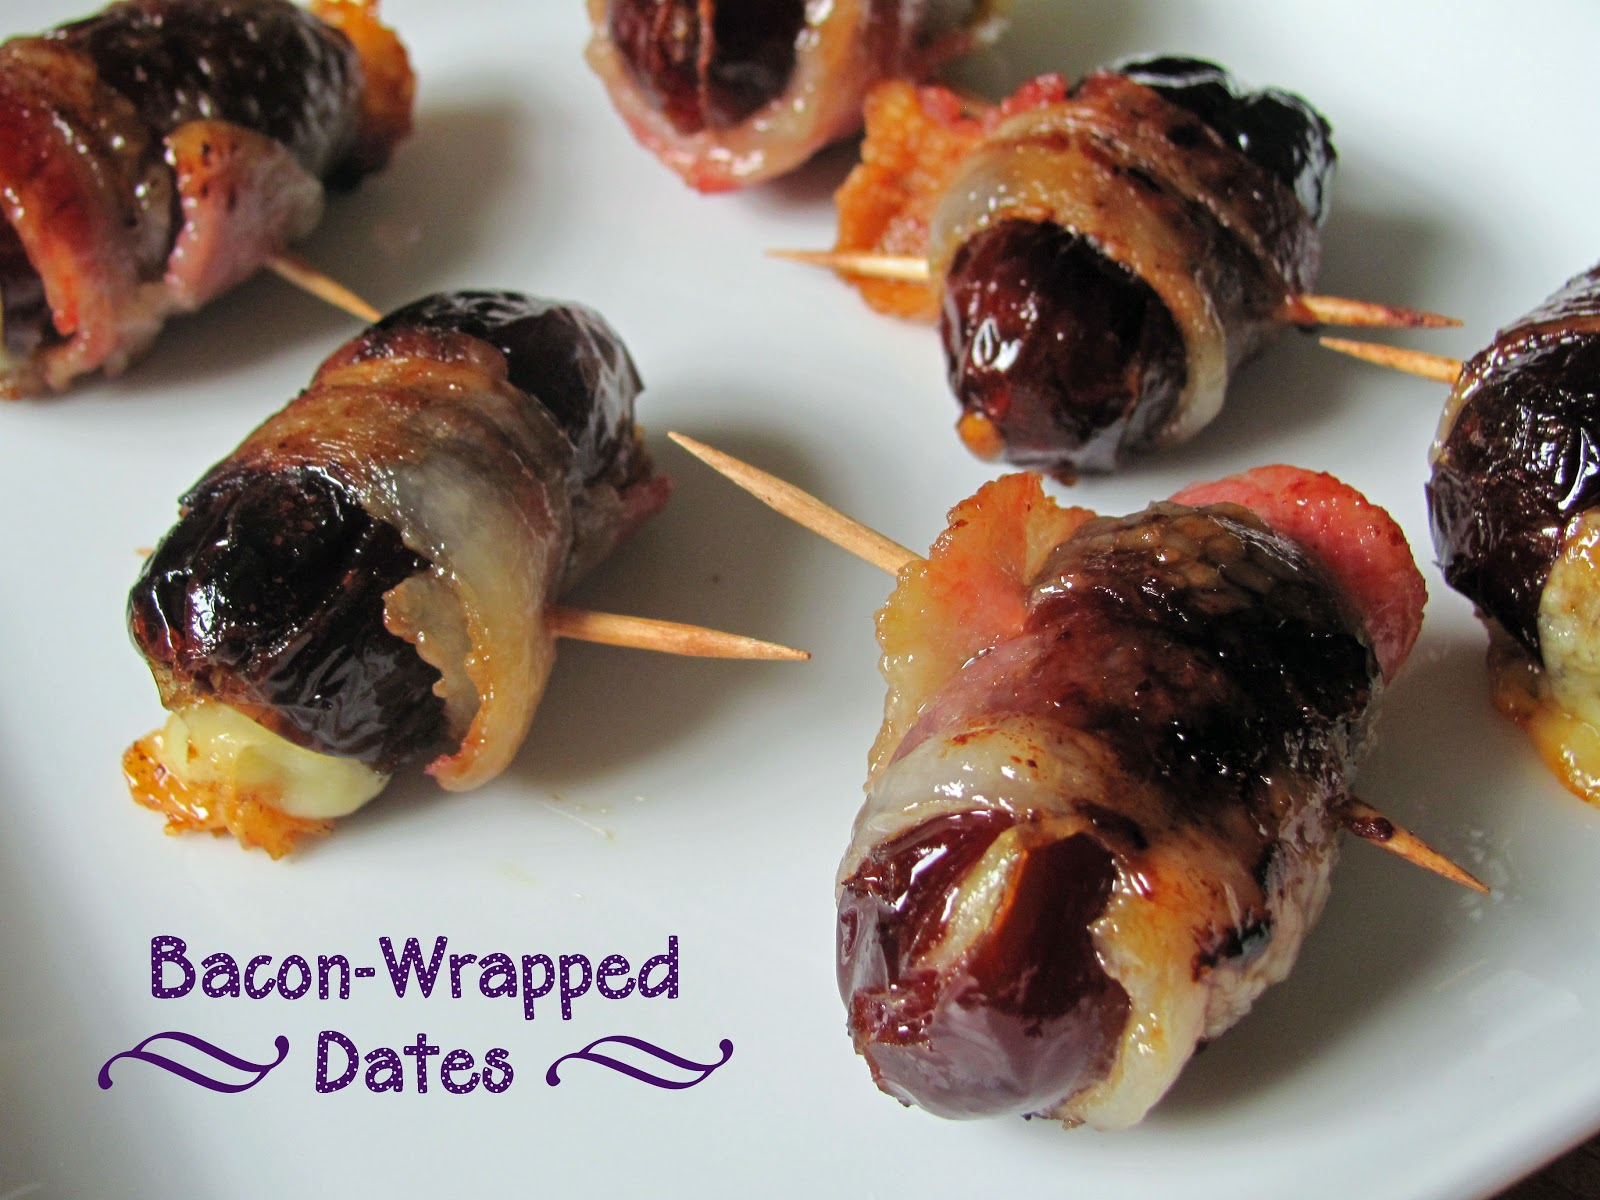 Bacon wrapped dates in Brisbane